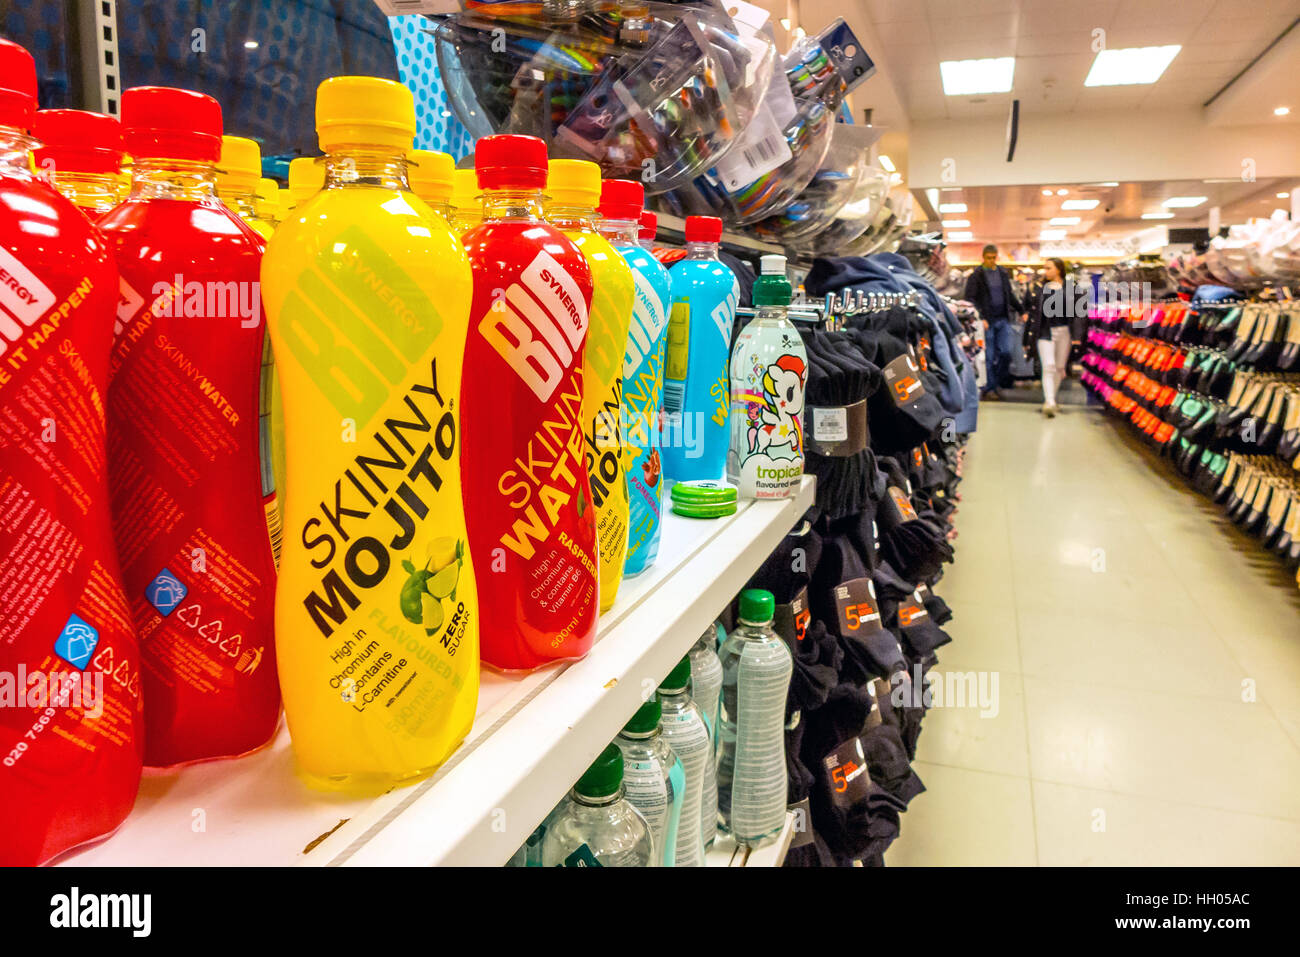 Soft drinks, including mojito-flavoured water, on sale at Primark Stores in Brighton - Stock Image